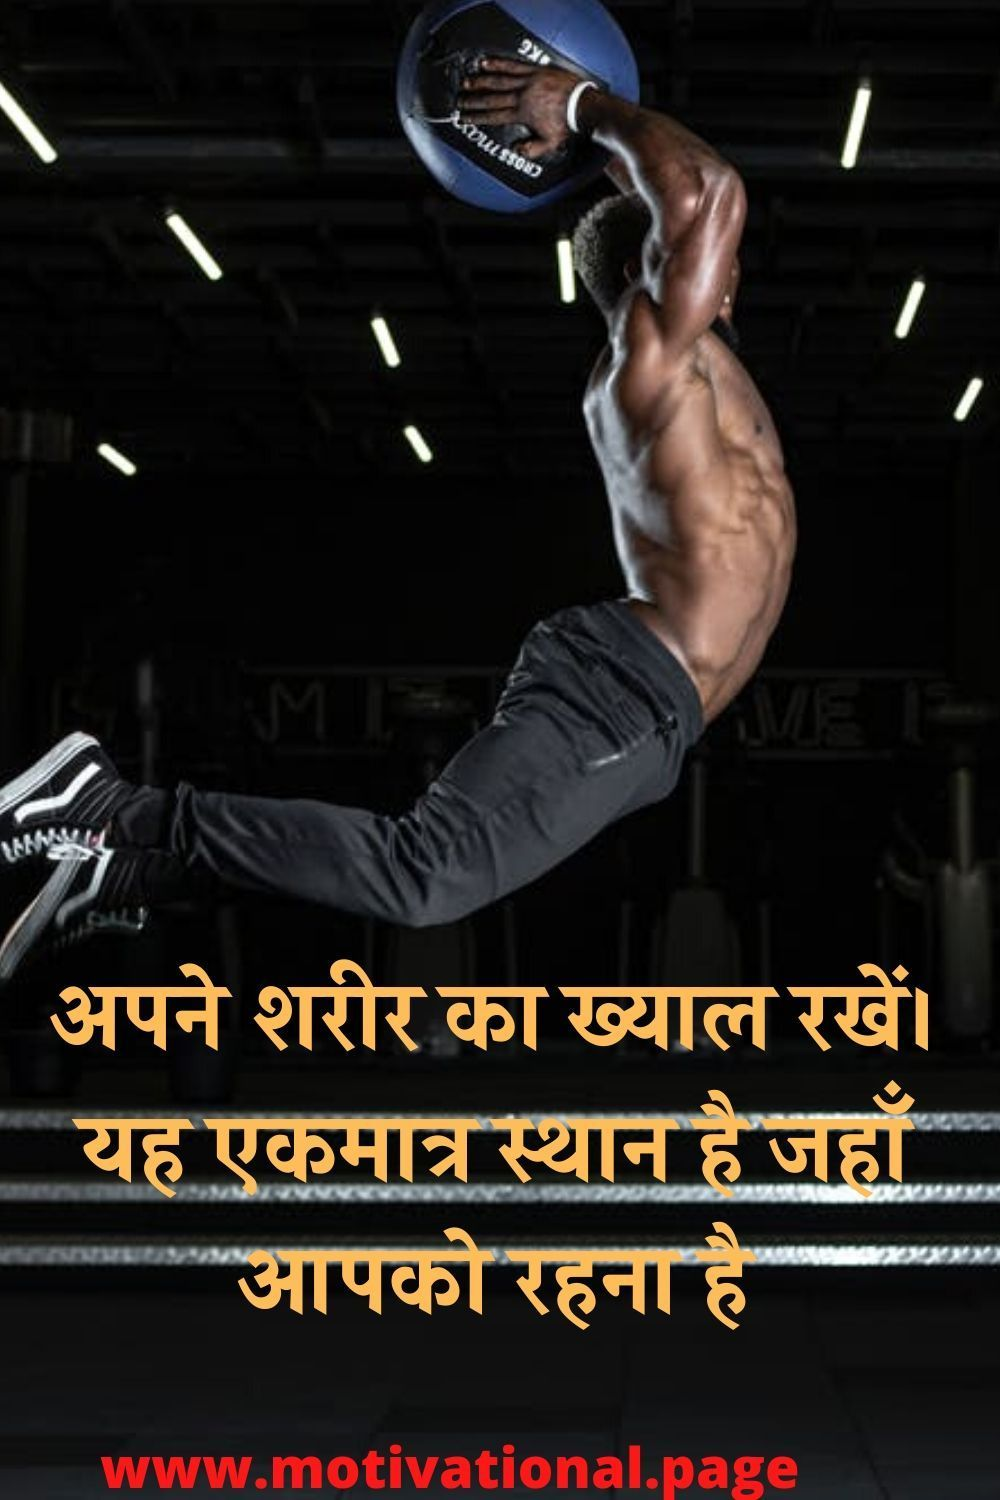 À¤¬ À¤¡ À¤¬ À¤² À¤¡ À¤— À¤œ À¤® À¤ªà¤° À¤• À¤Ÿ À¤¸ Gym Body Building Motivational Quotes In Hindi À¤® À¤Ÿ À¤µ À¤¶à¤¨à¤² À¤ª À¤œ In 2020 Motivational Quotes In Hindi Bodybuilding Motivation Quotes Gym Body